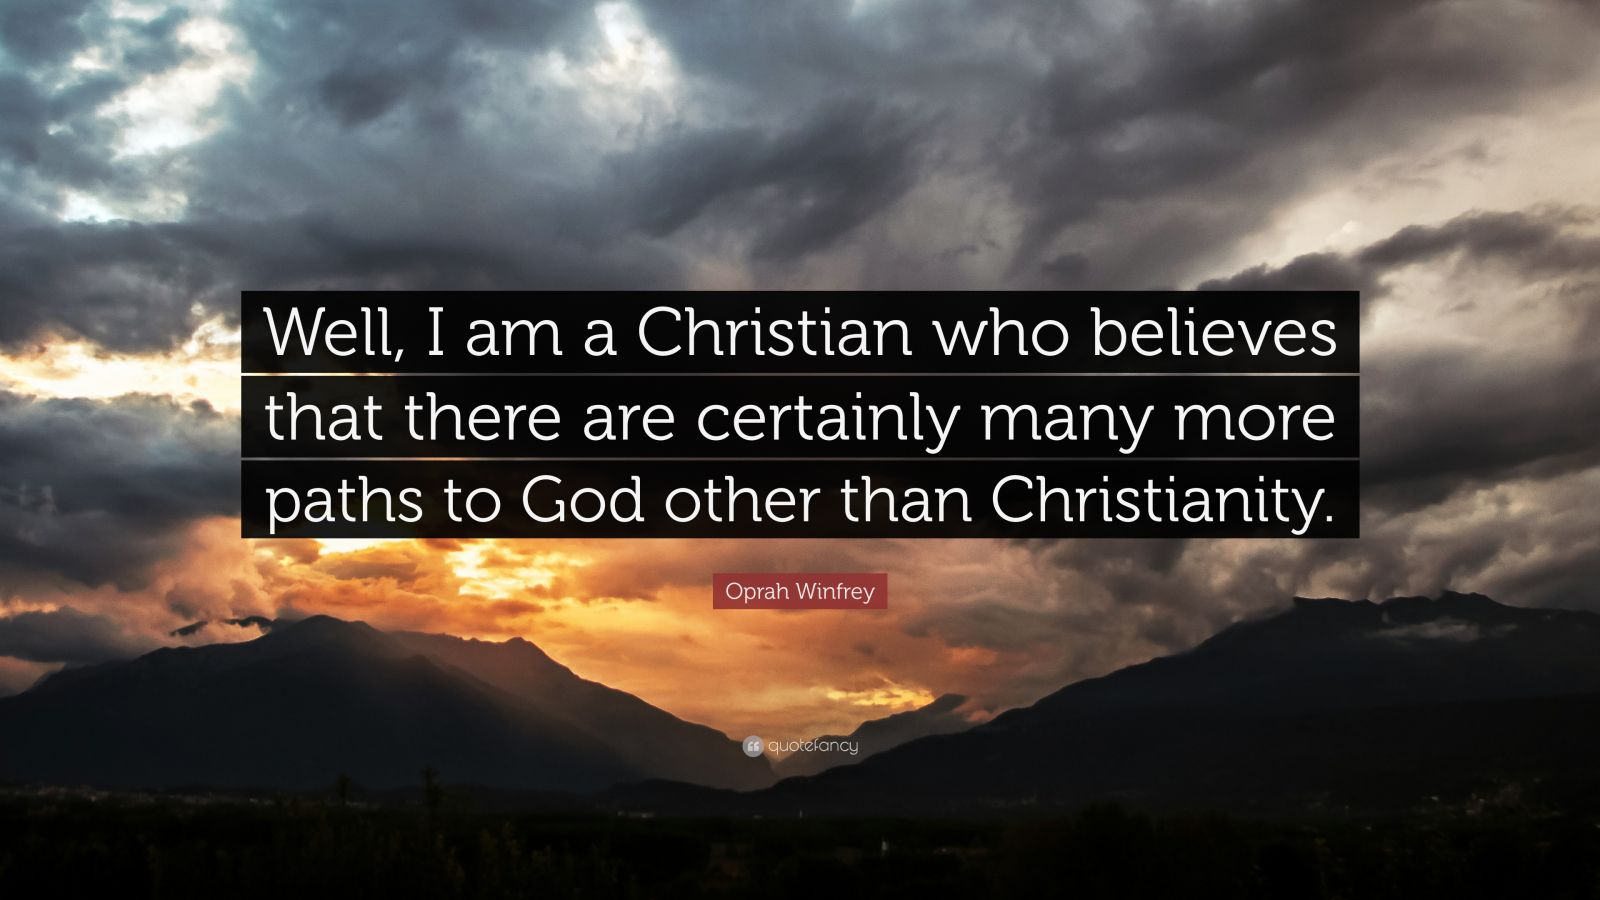 """Oprah Winfrey Quote: """"Well, I am a Christian who believes that there are certainly many more paths to God other than Christianity."""""""